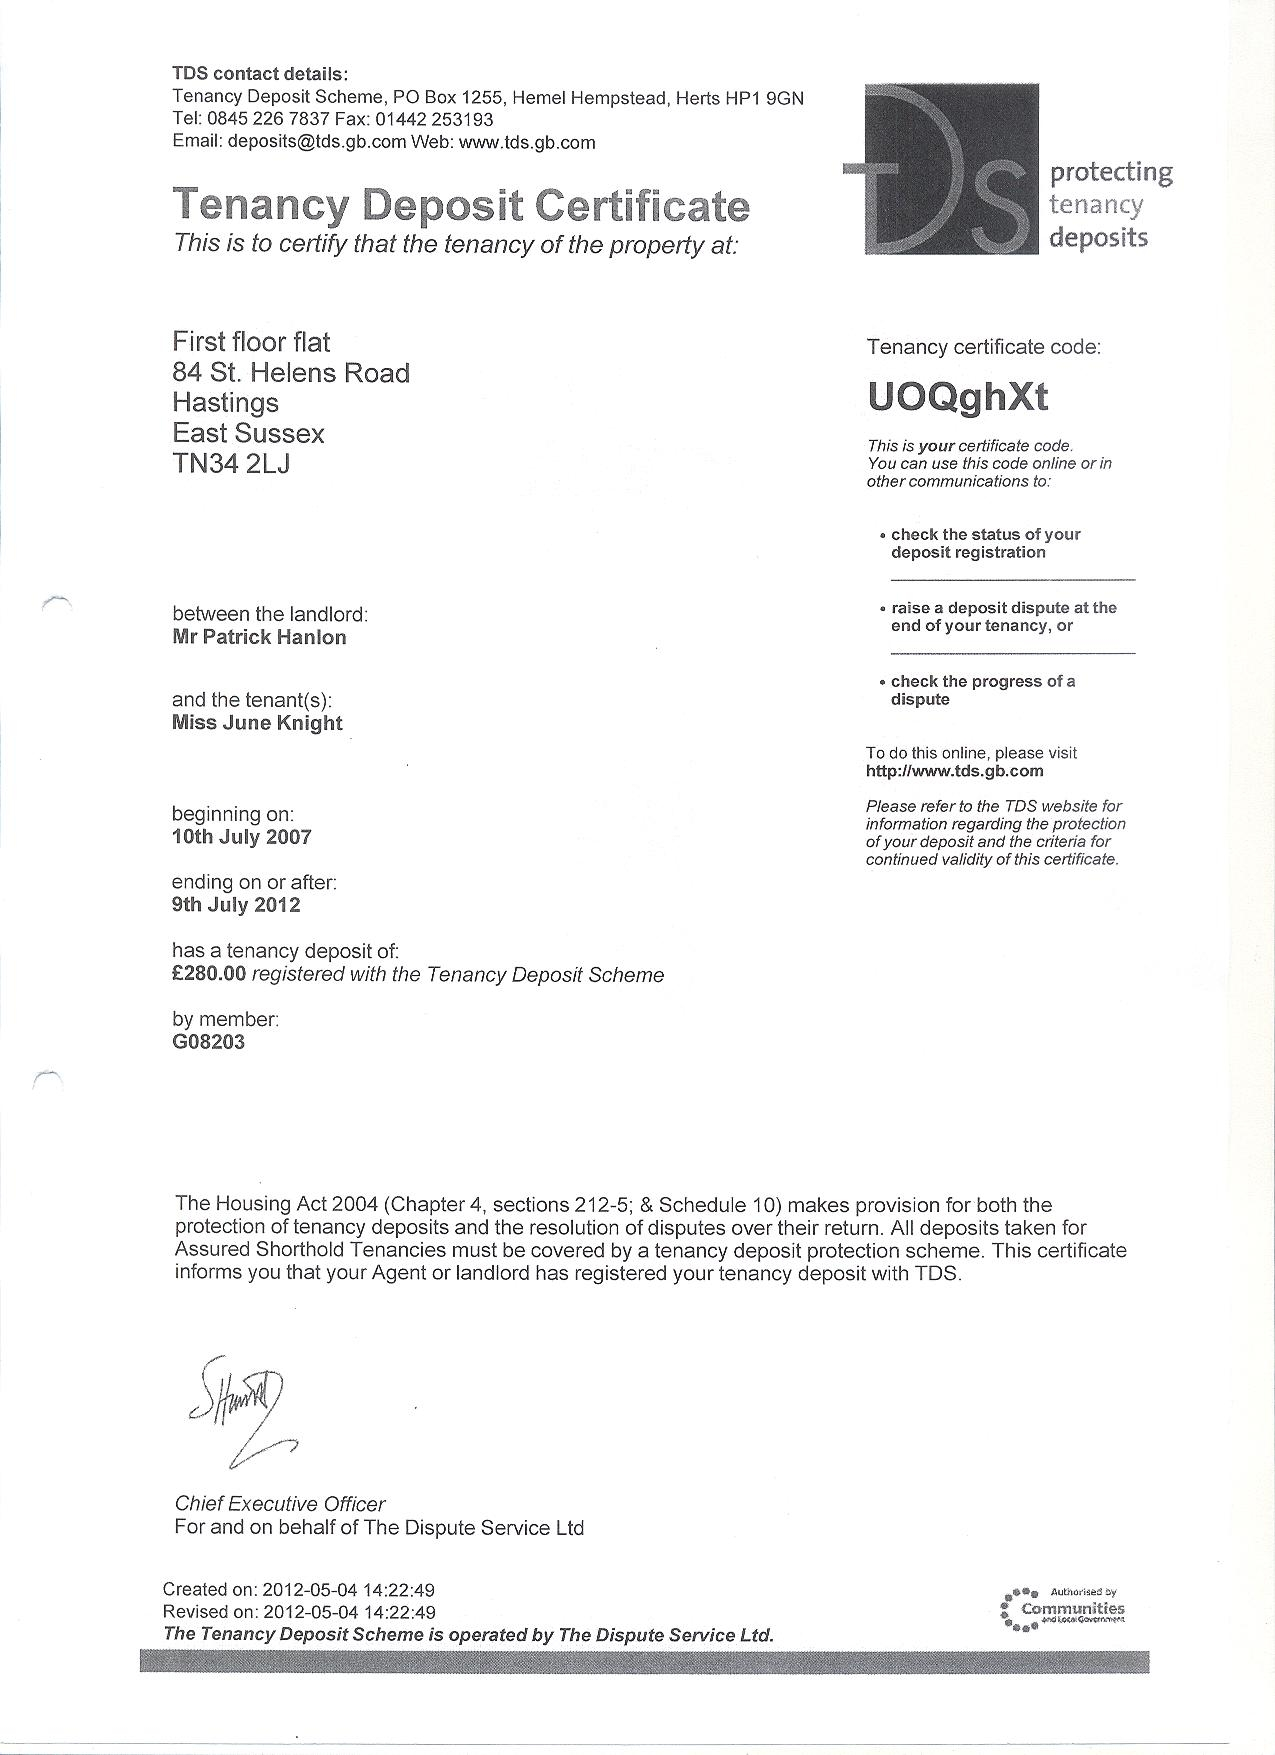 Bad property management sam hensher accounts does not tds and the late protection of deposits 2013 tenancy deposite certificate xflitez Images